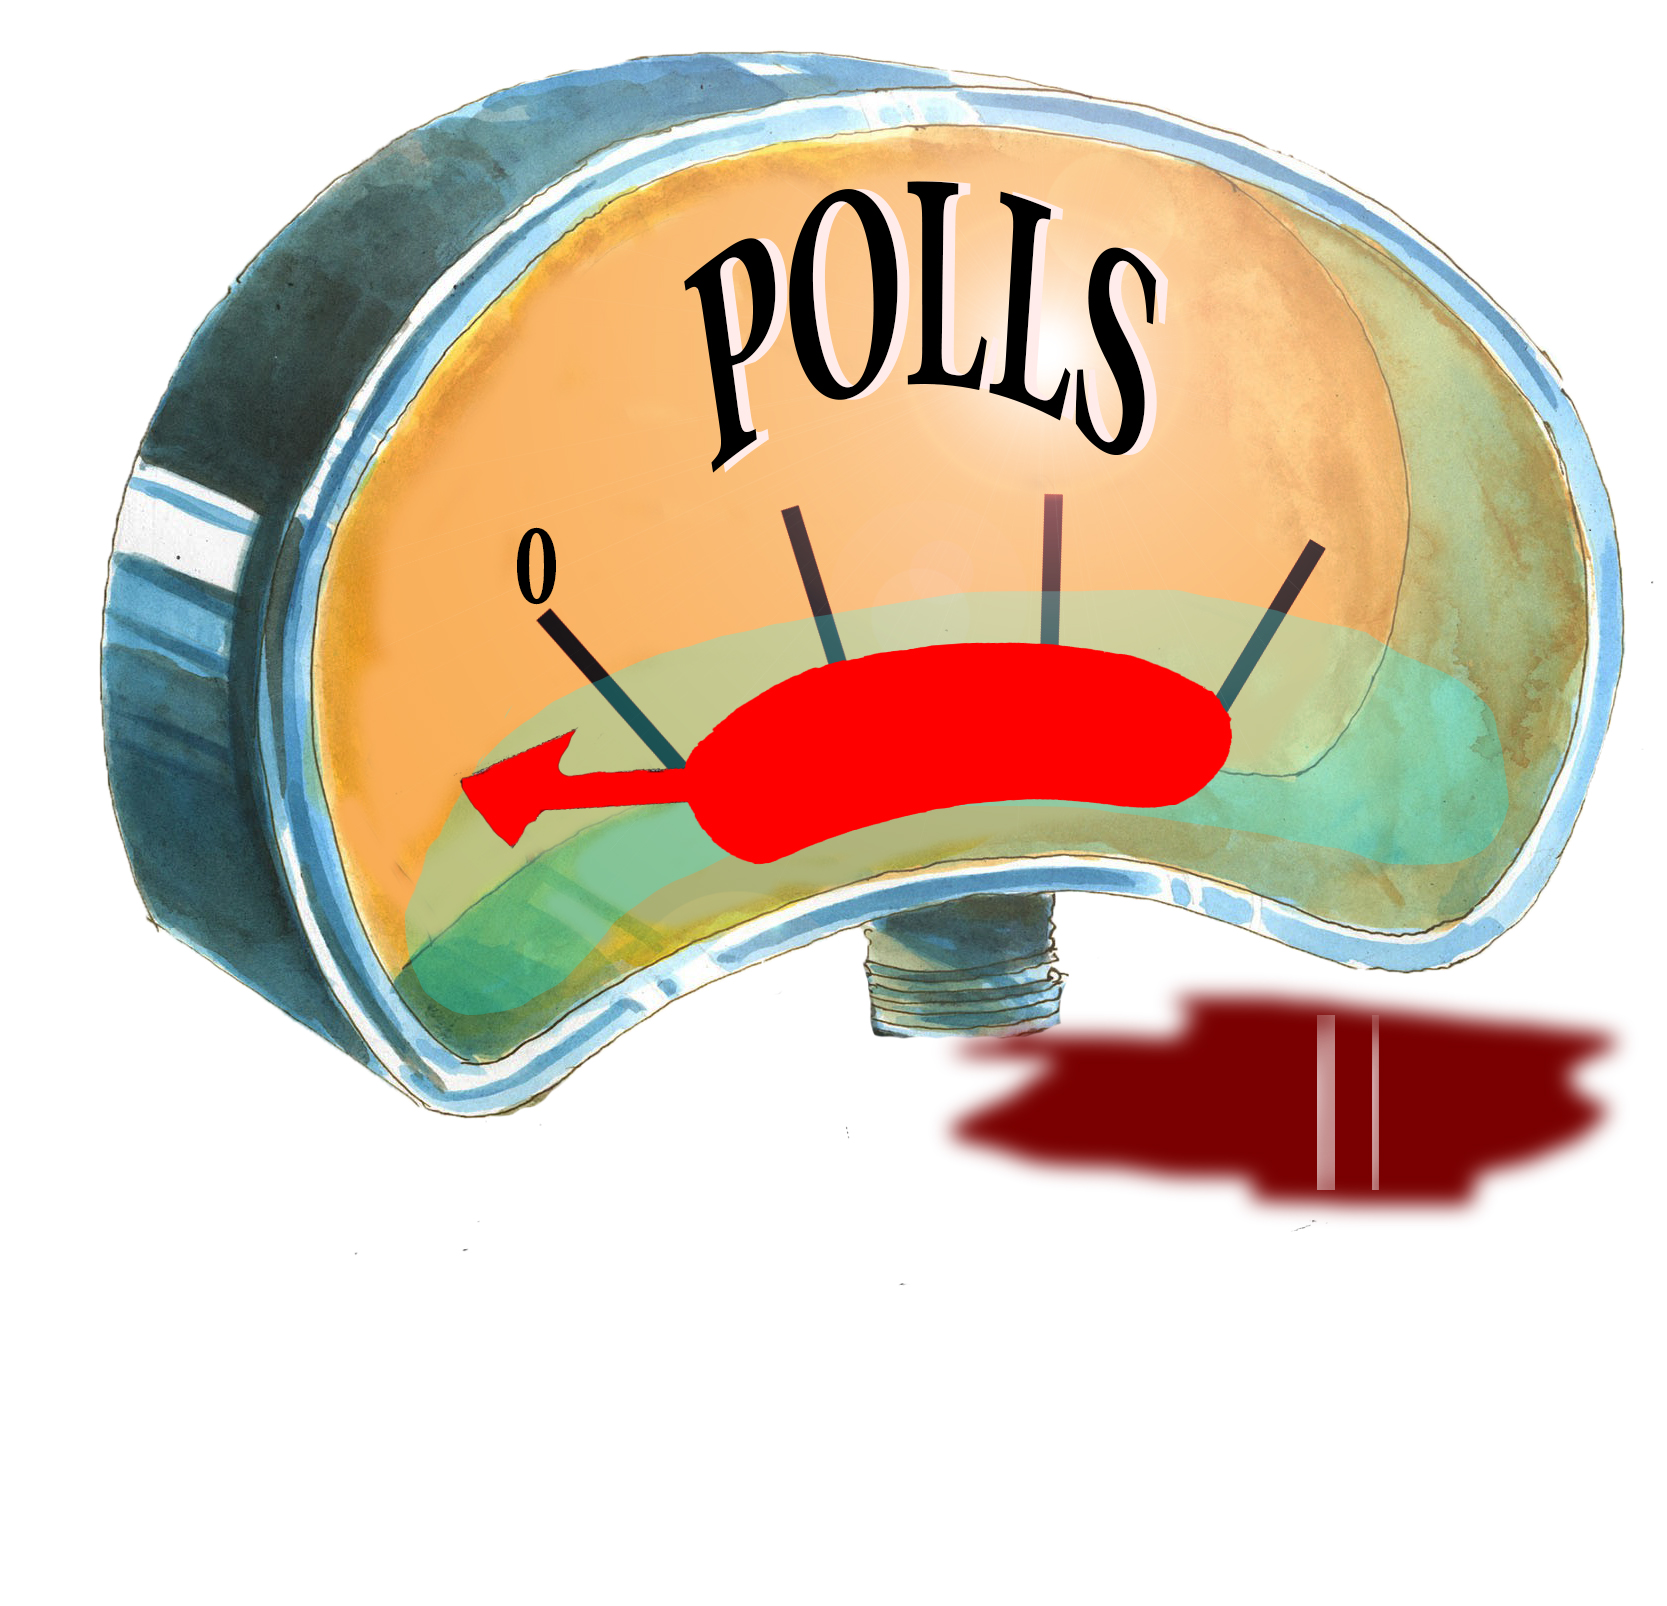 Oped: polling is destroying Western Democracies